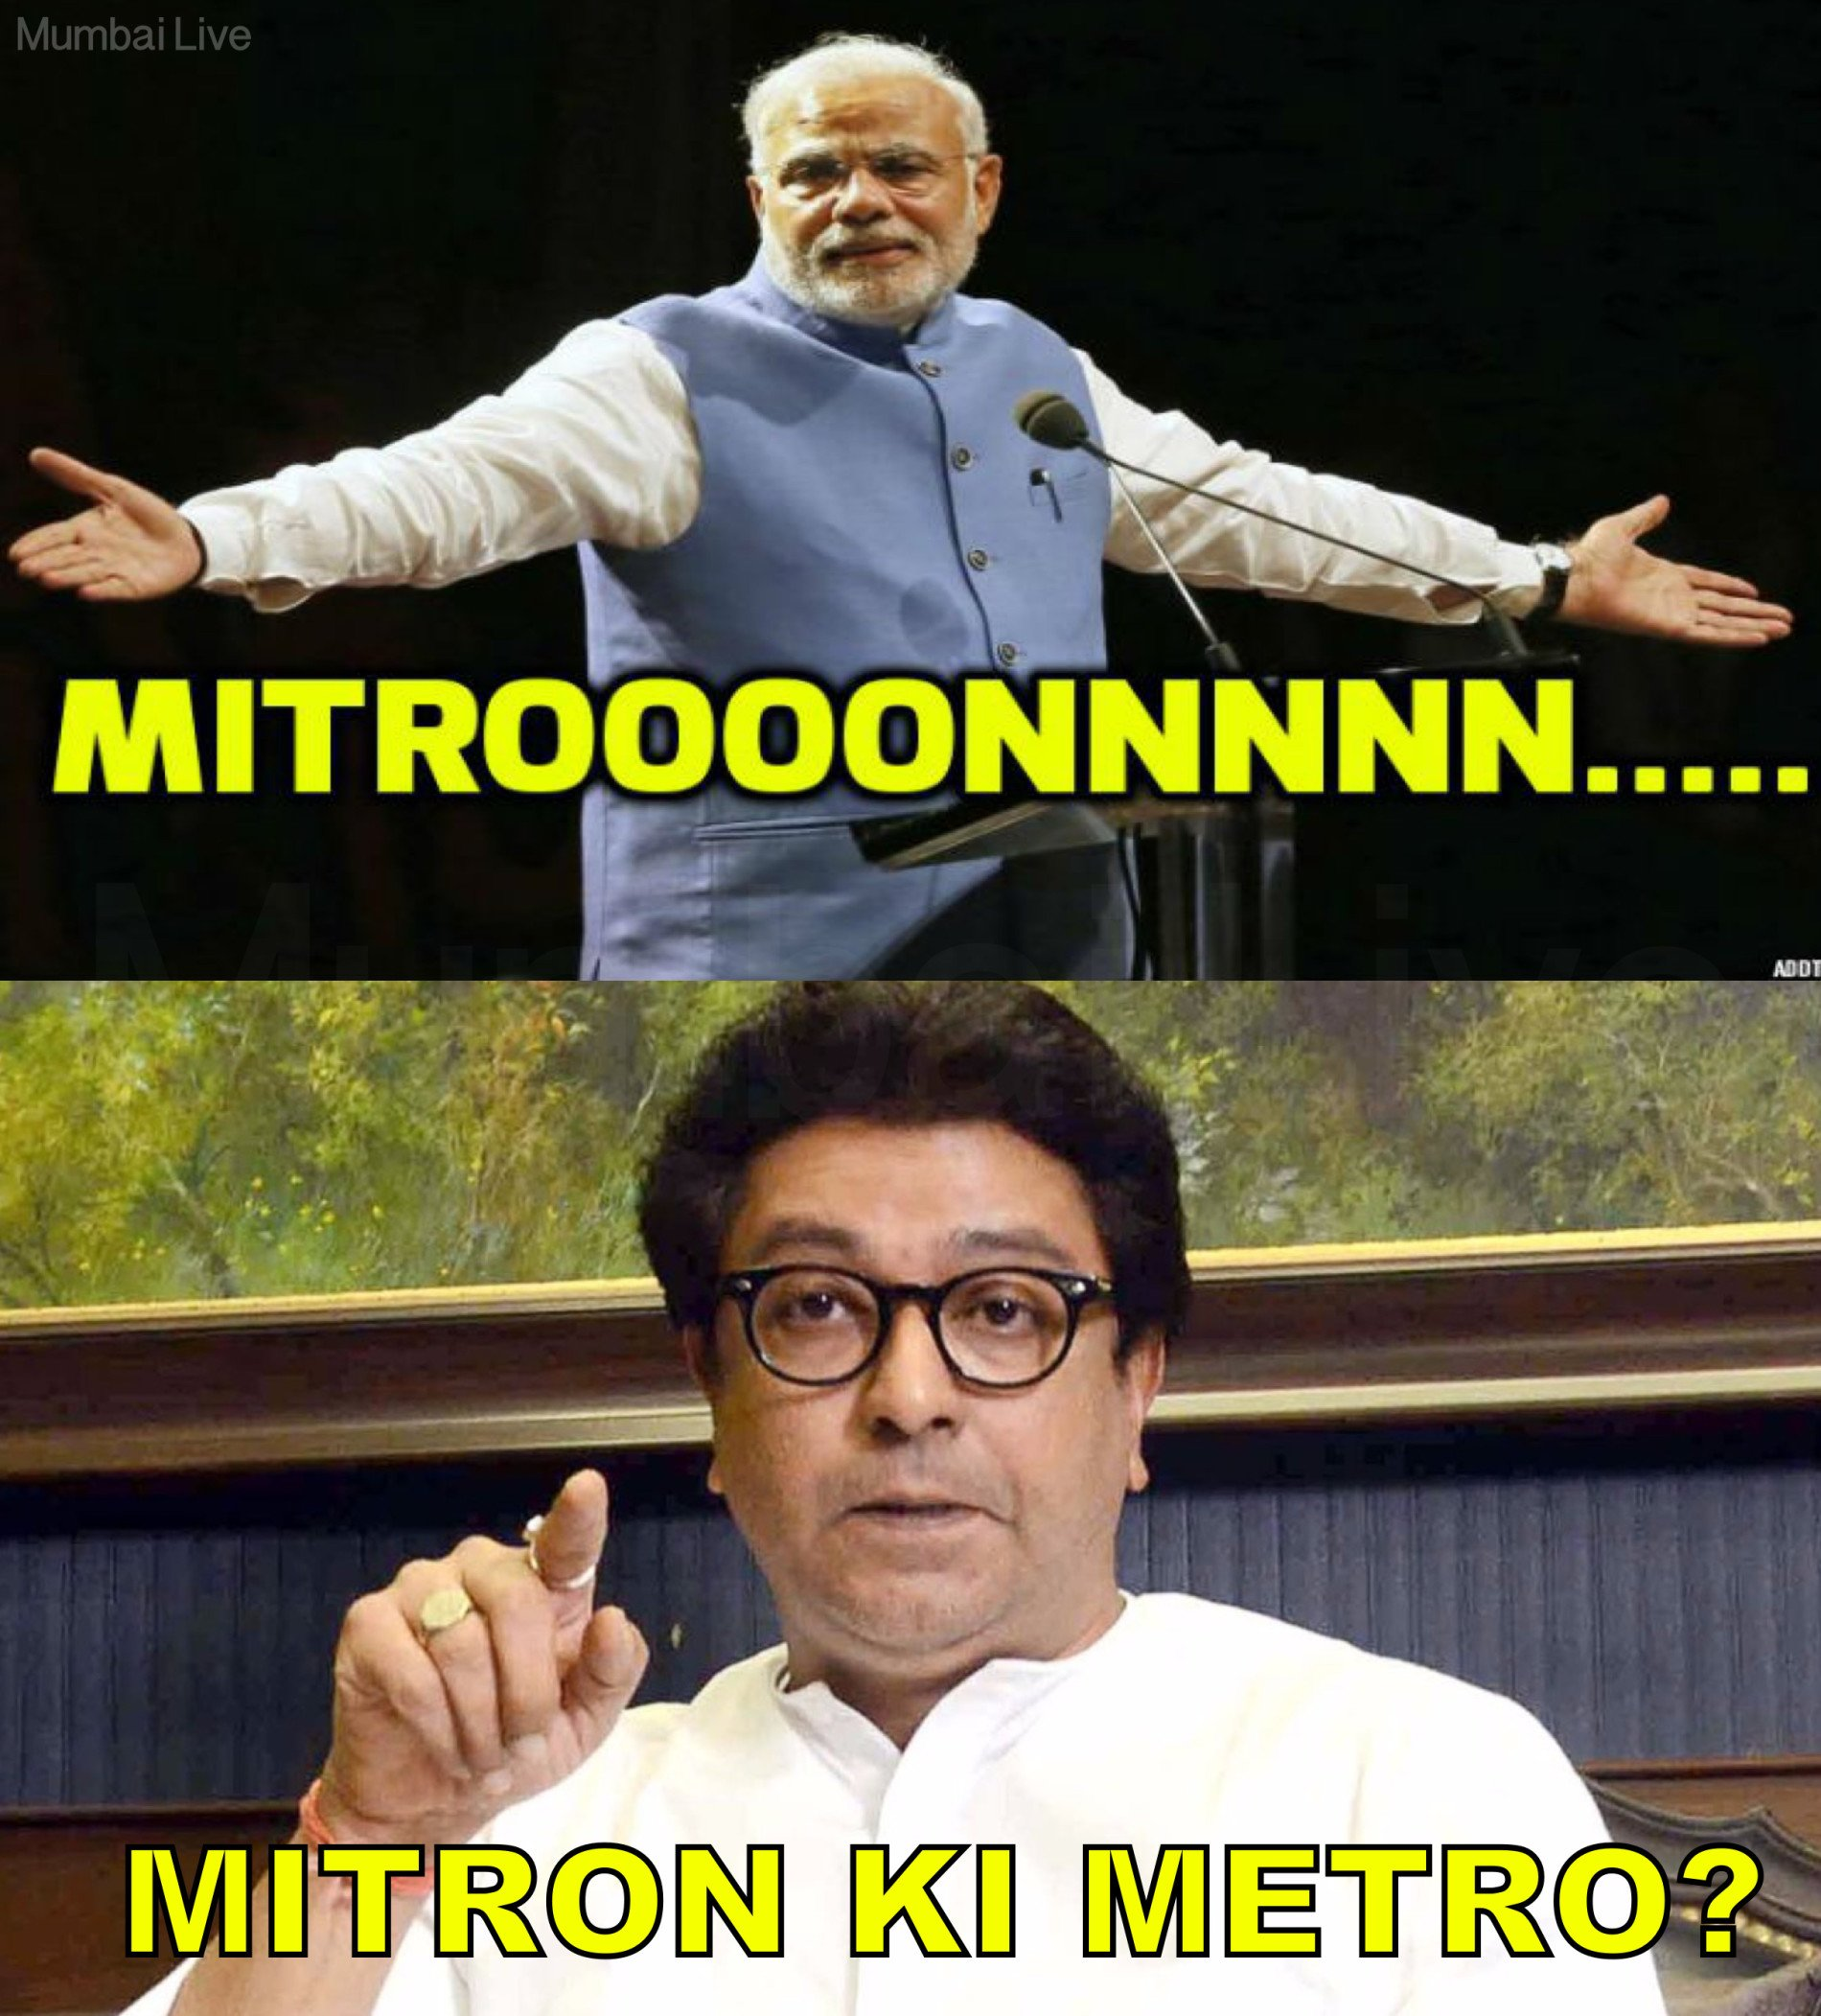 Raj Thackeray takes a dig at Modi with his Metro or Mitron comment